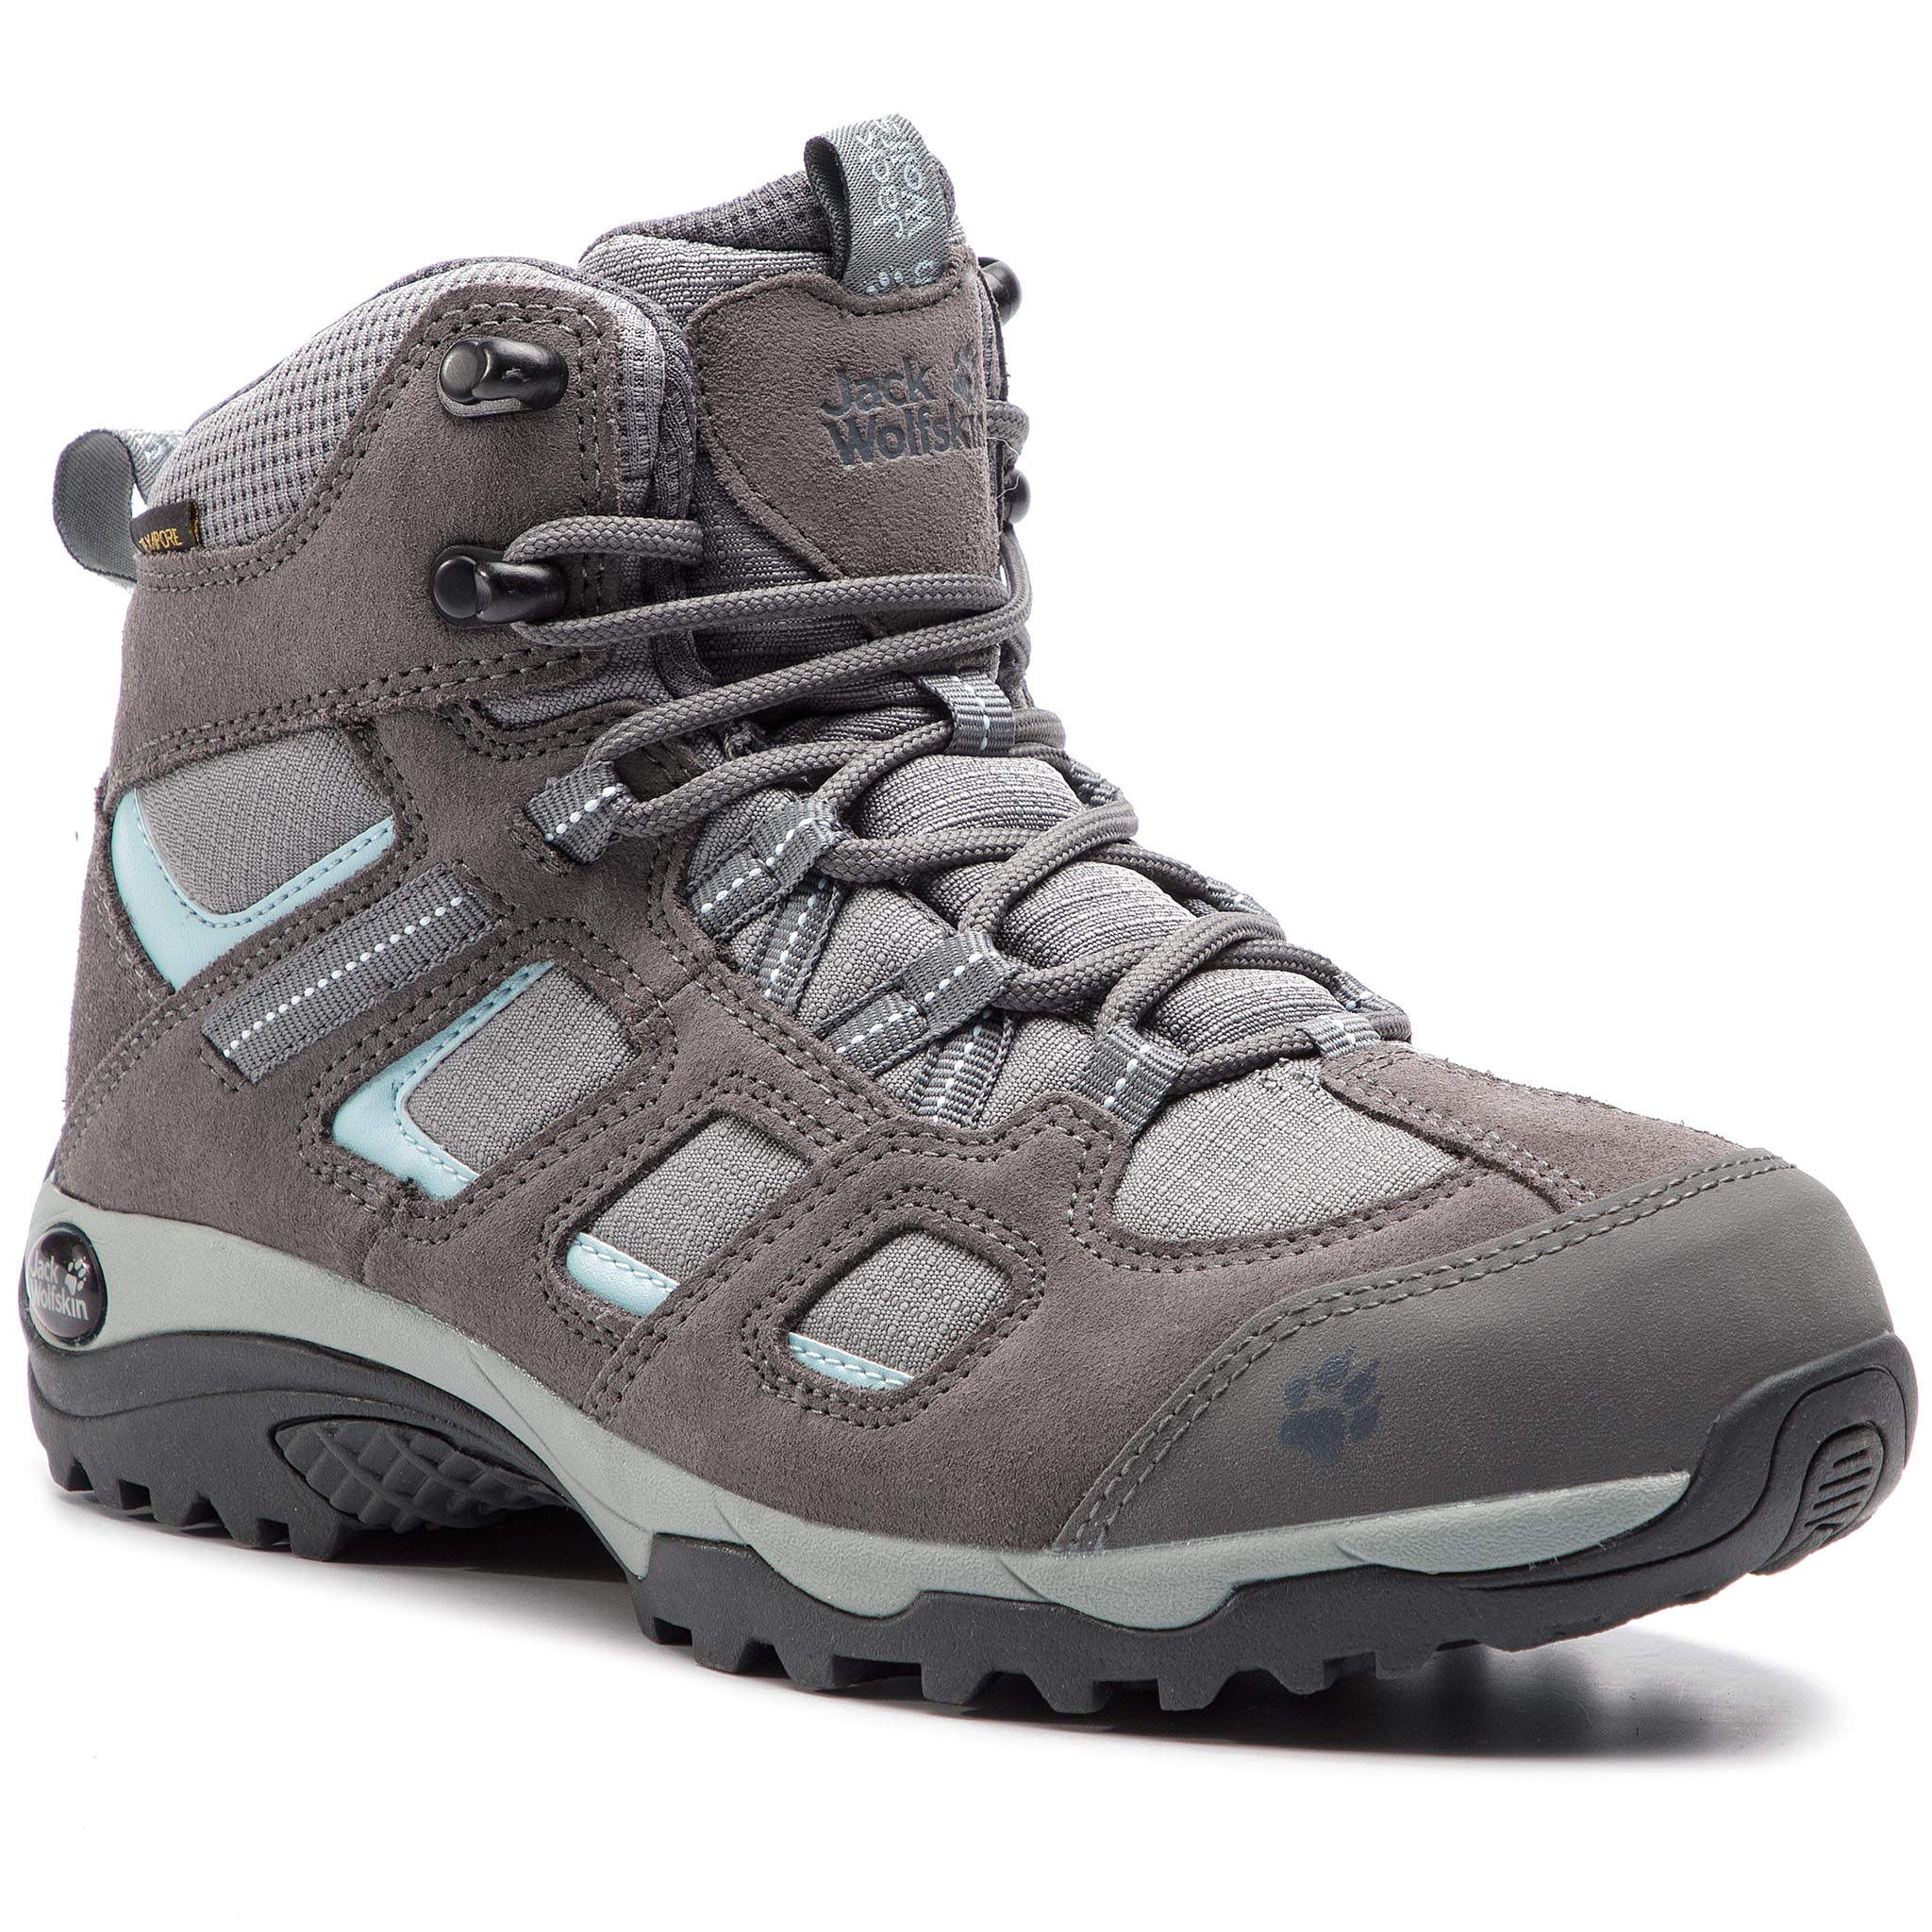 Trekkings Jack Wolfskin - Vojo Hike 2 Texapore Mid W 4032381 Tarmac Grey imagine epantofi.ro 2021